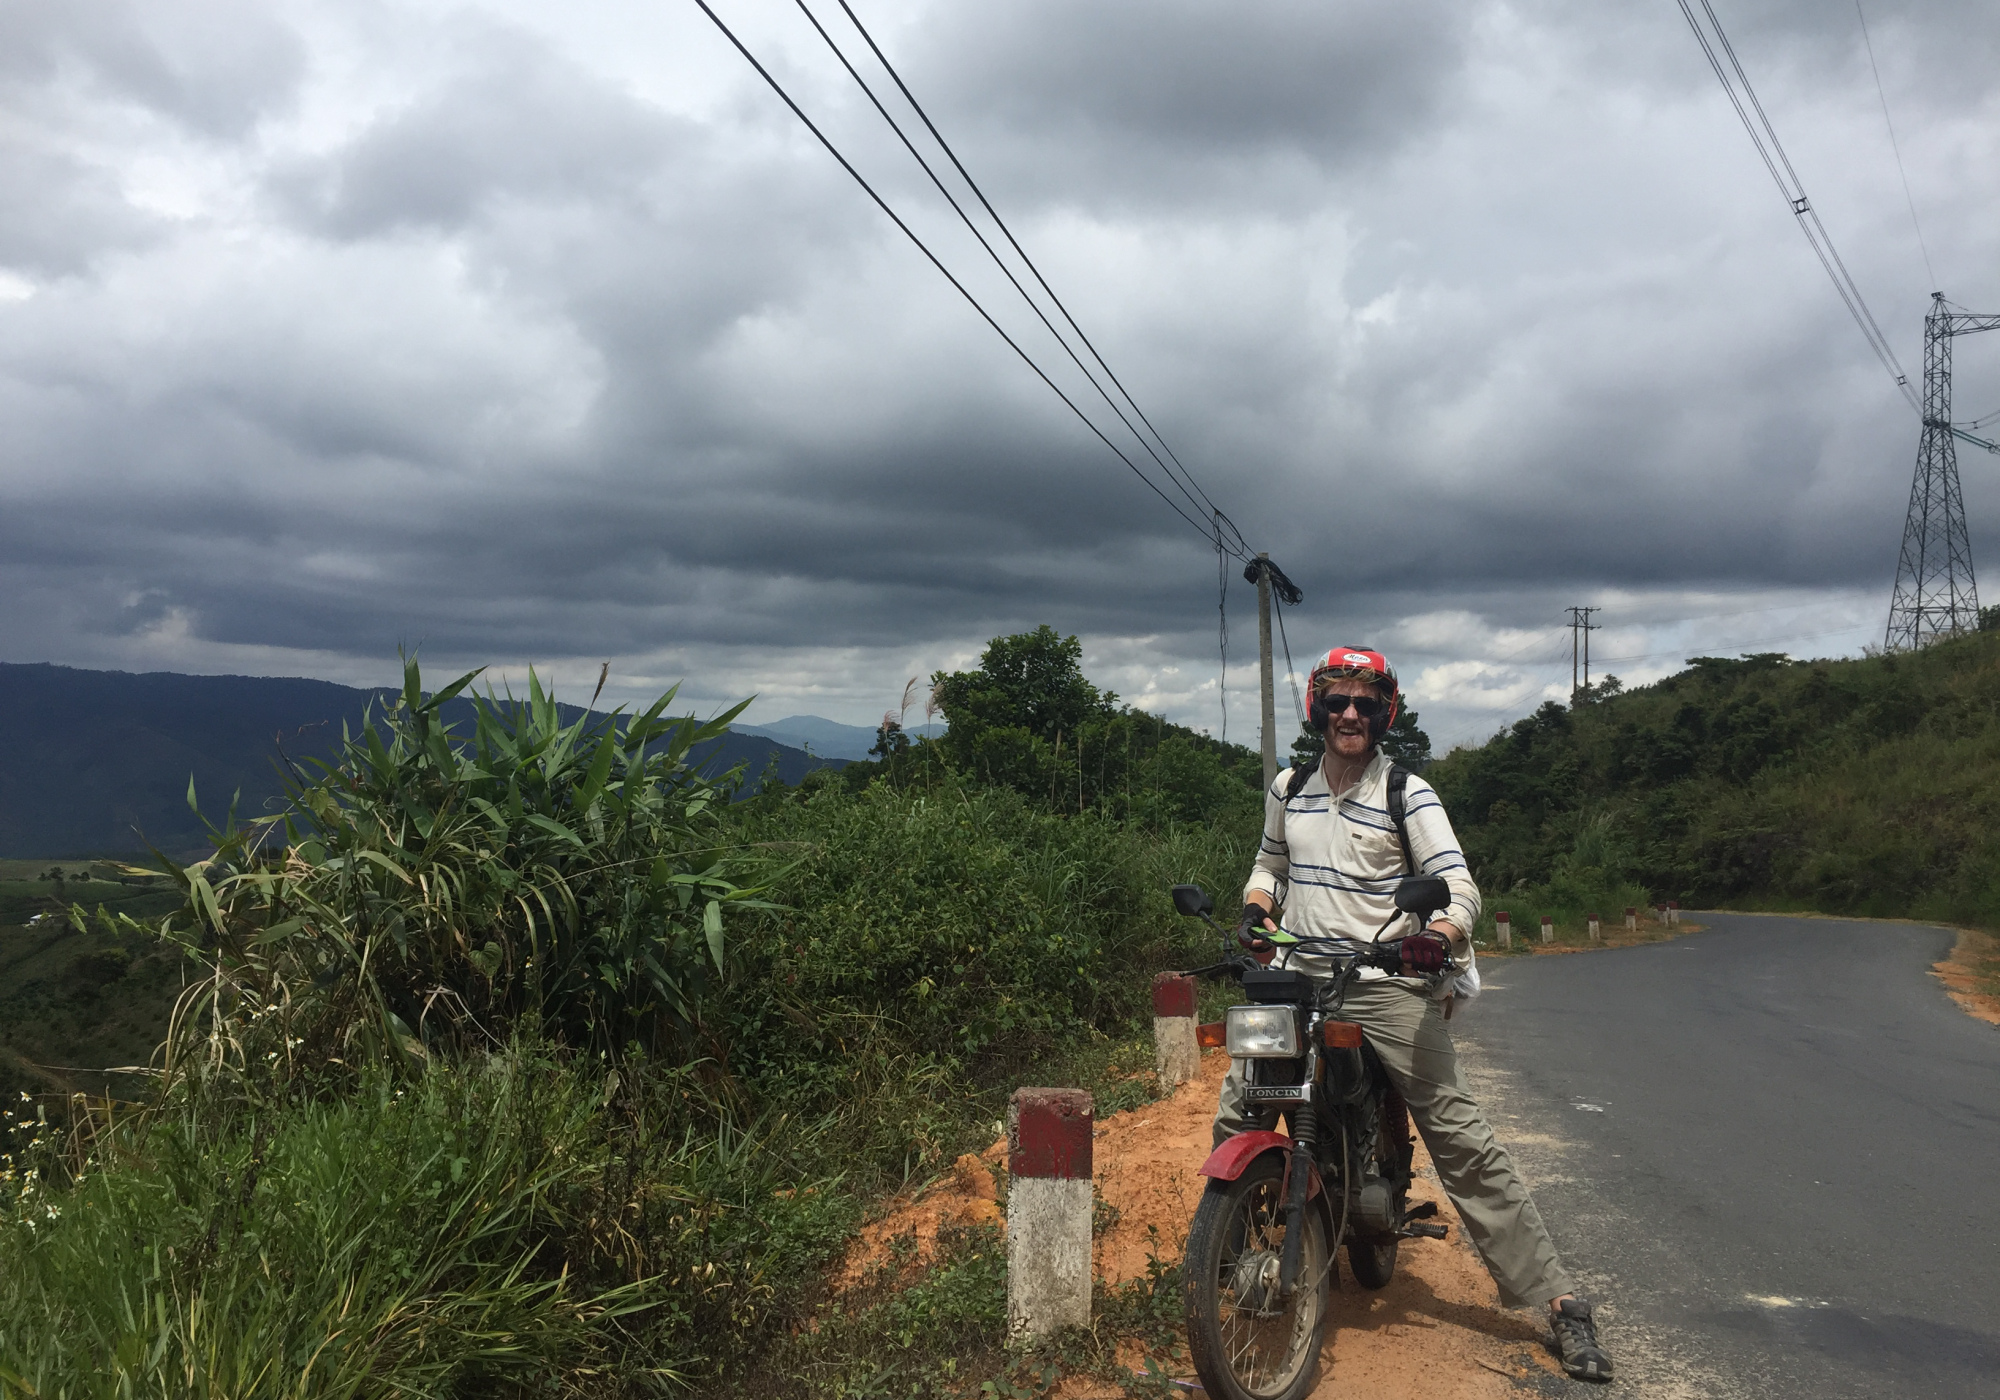 I drove a motorcycle up Vietnam. I had never driven a motorcycle before or anything that was manual so it was pretty scary at first but more rewarding because of it.